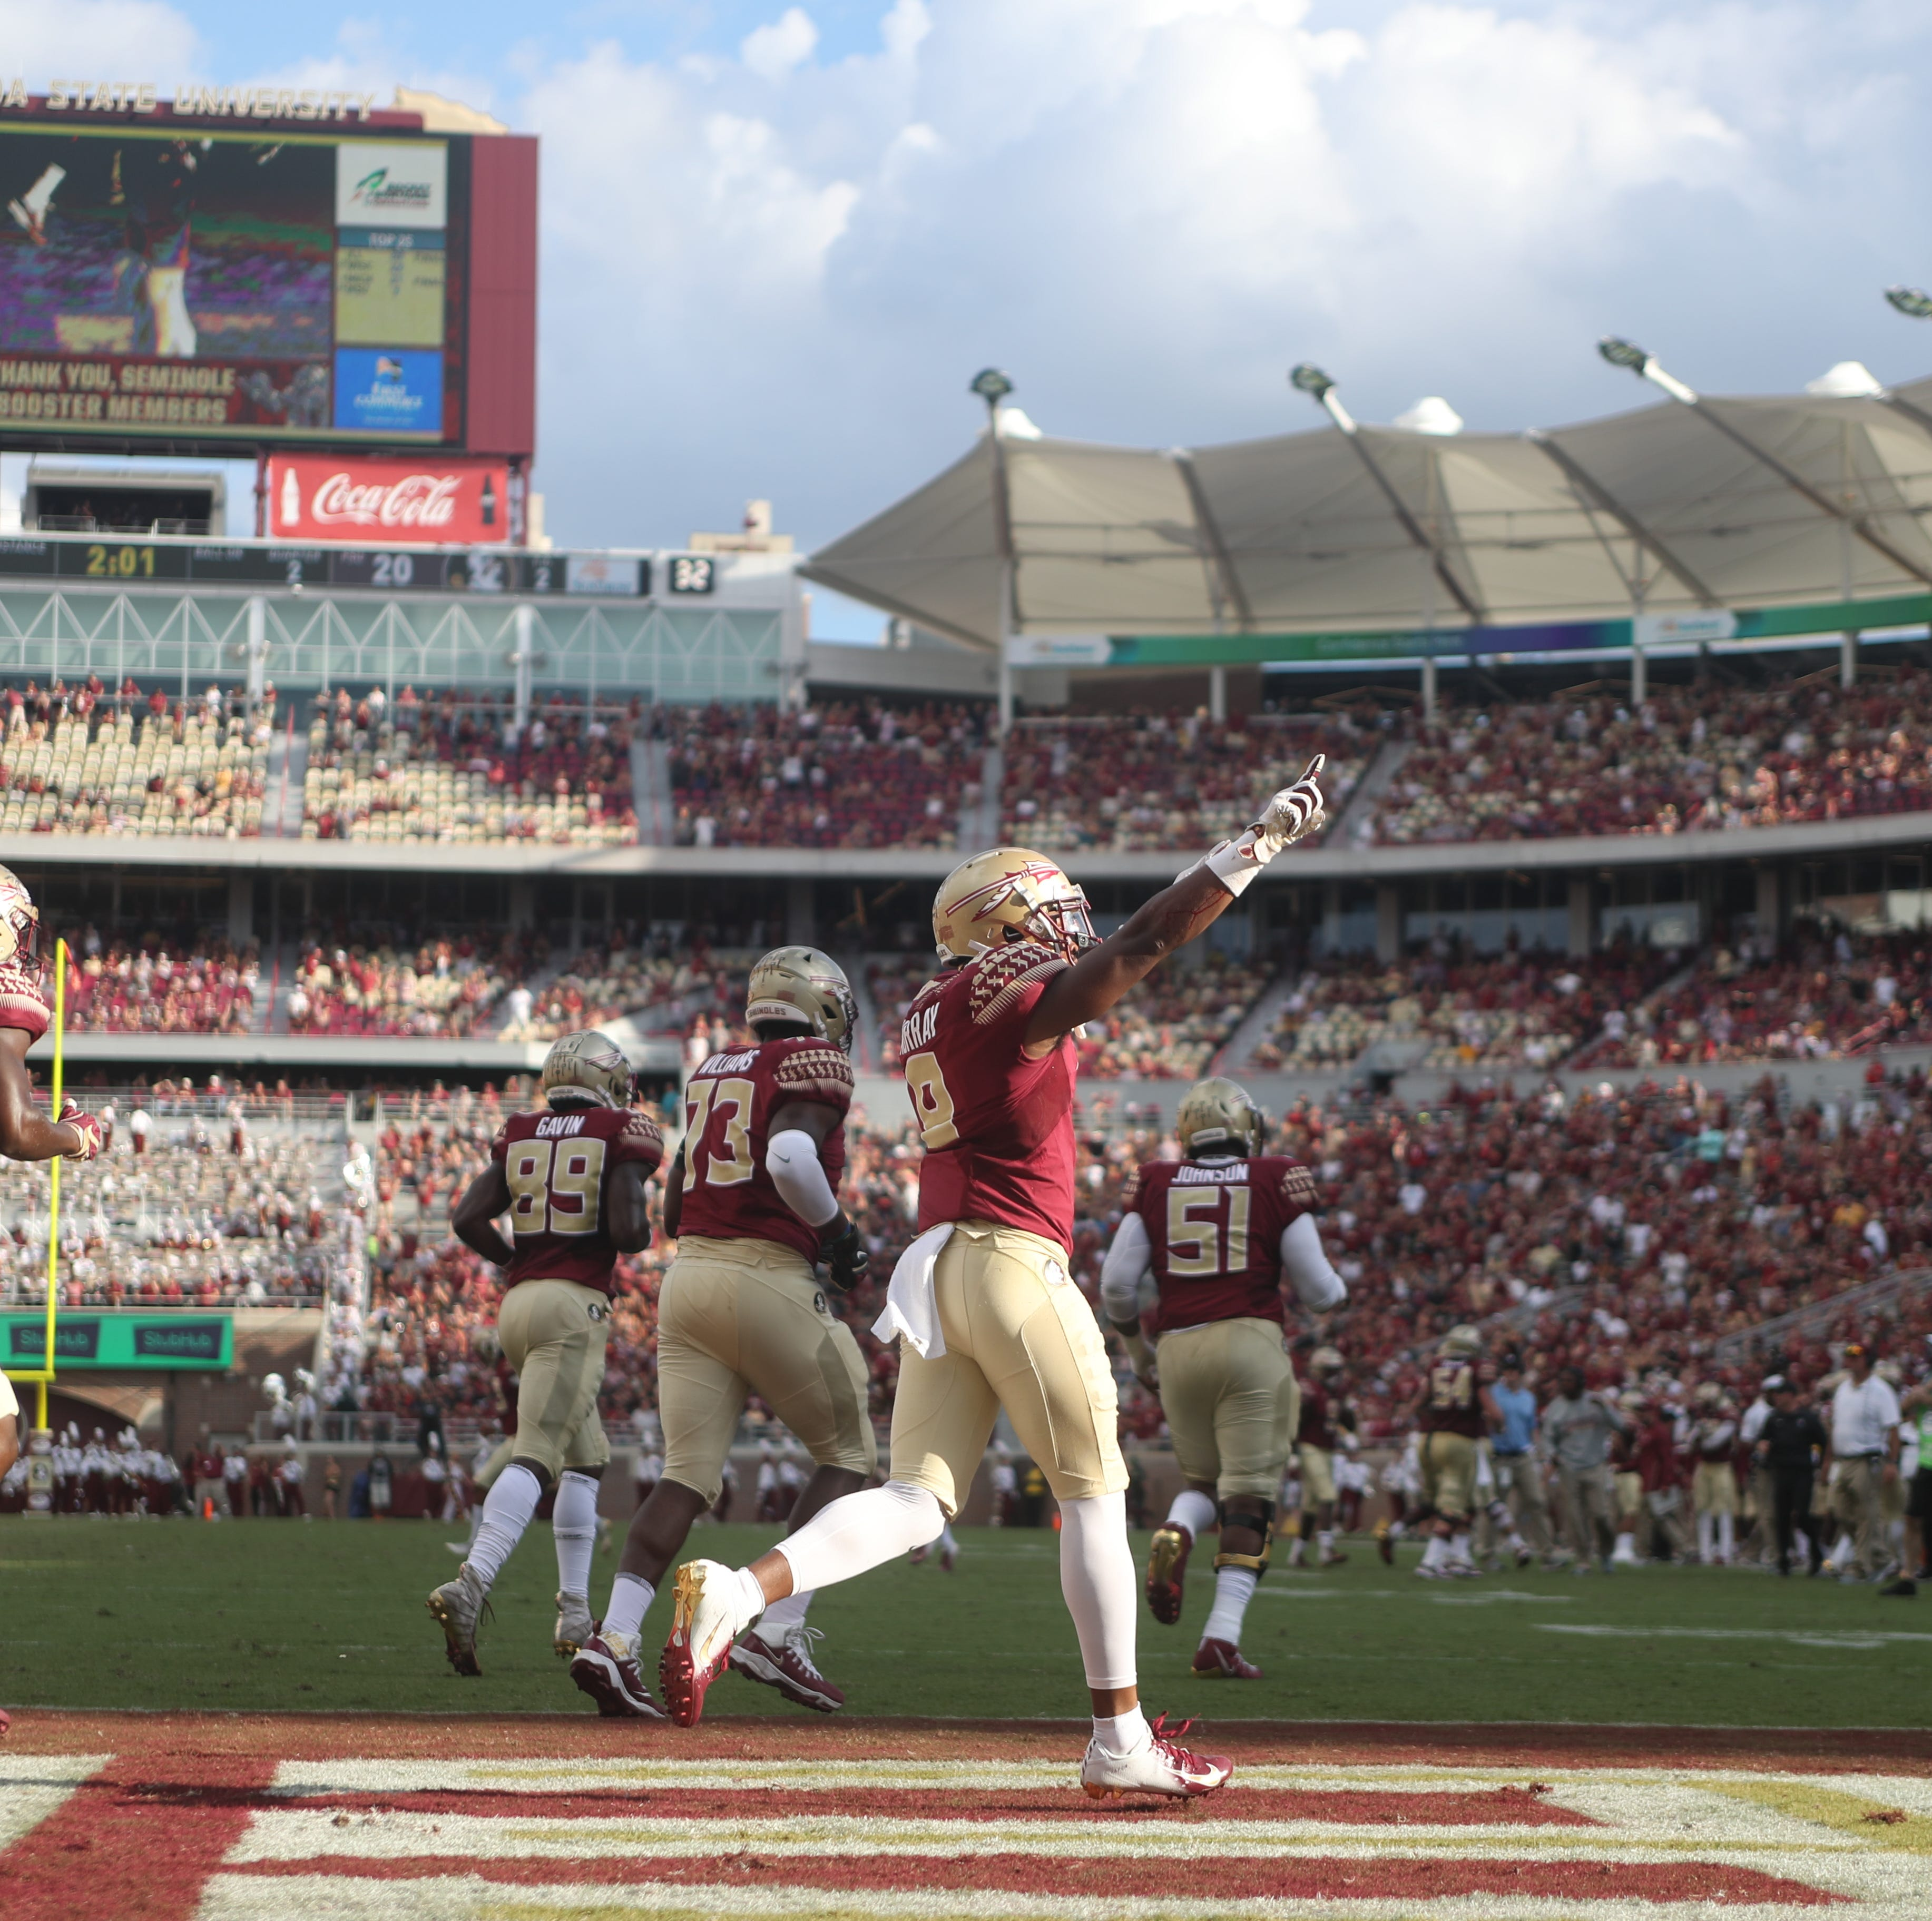 Final: FSU rallies to beat Boston College 22-21